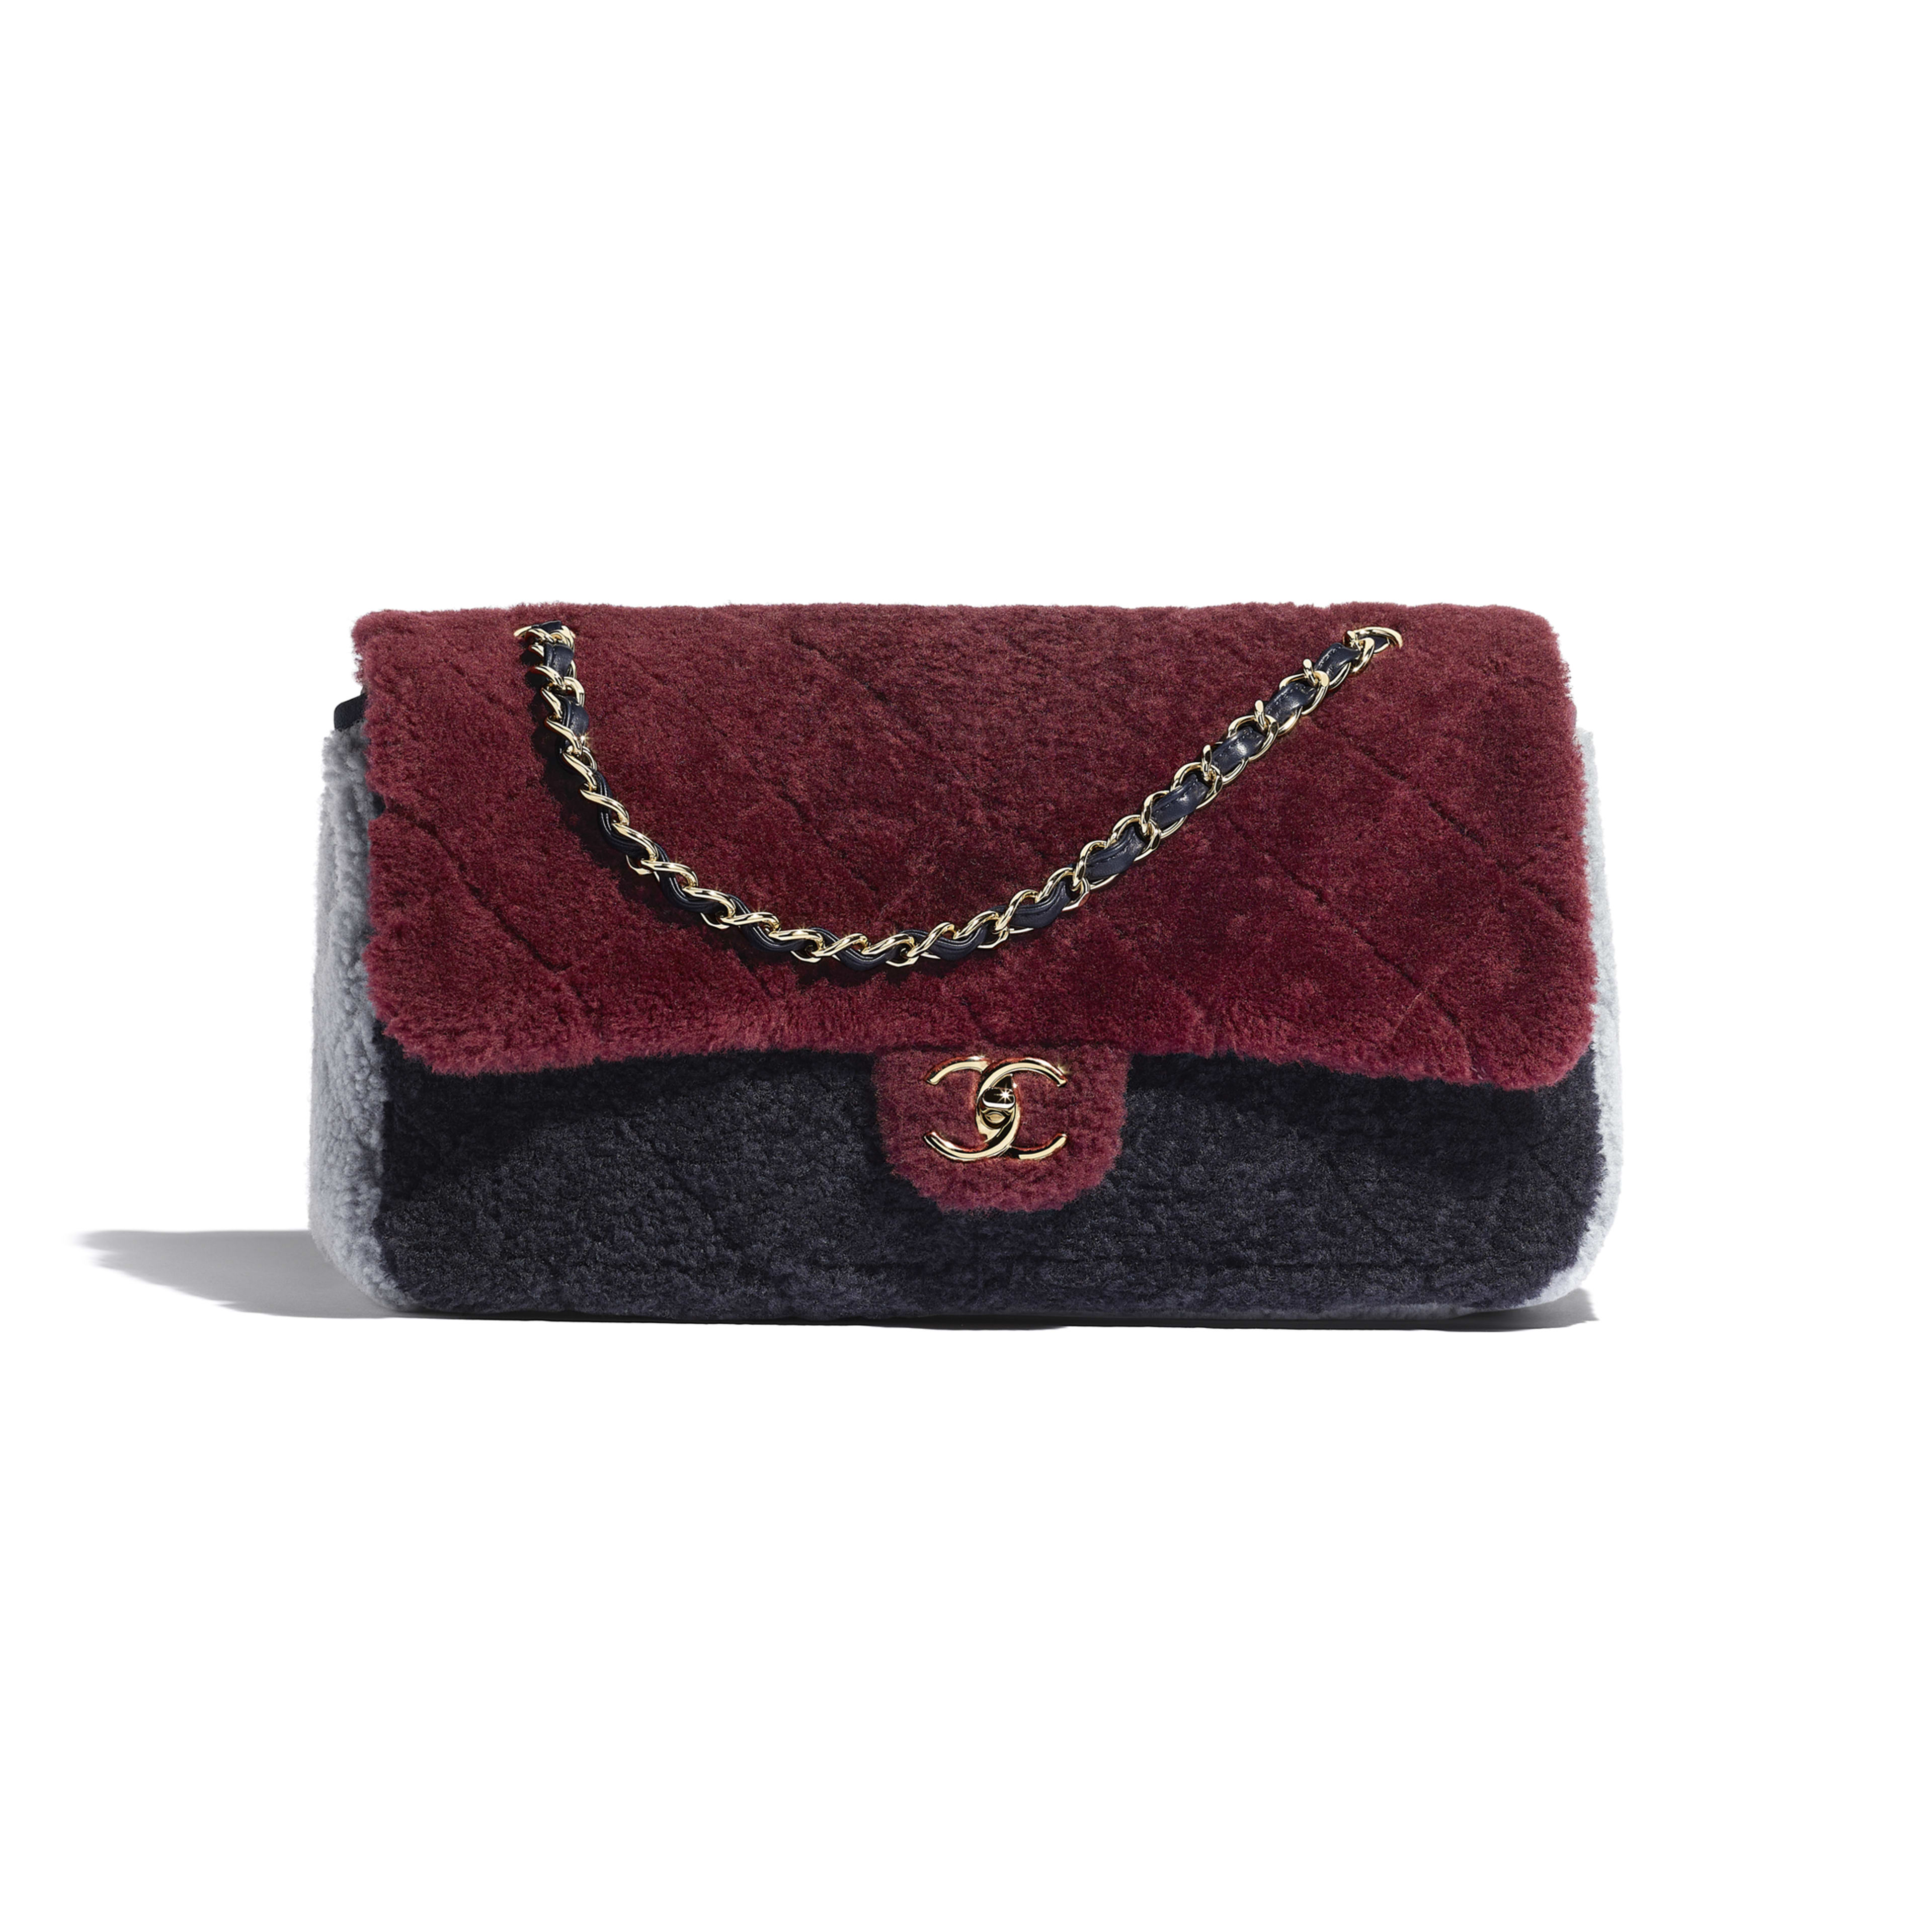 Flap Bag - Burgundy, Navy Blue & Gray - Shearling Sheepskin & Gold-Tone Metal - Default view - see full sized version